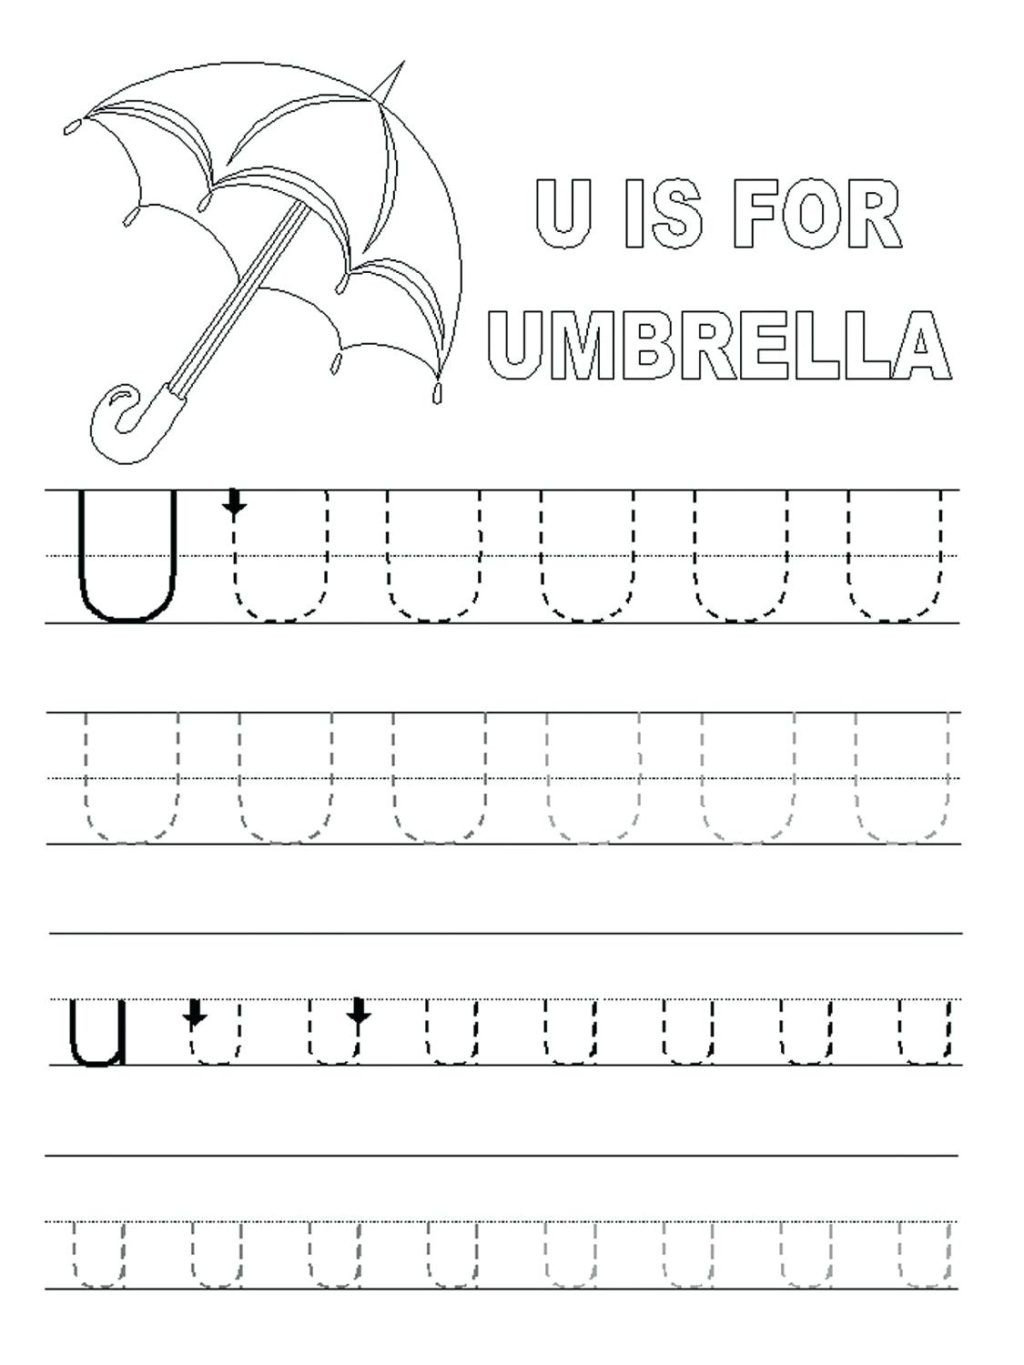 M Worksheets Preschool Worksheet Free Printable Worksheets for Kids Sheets